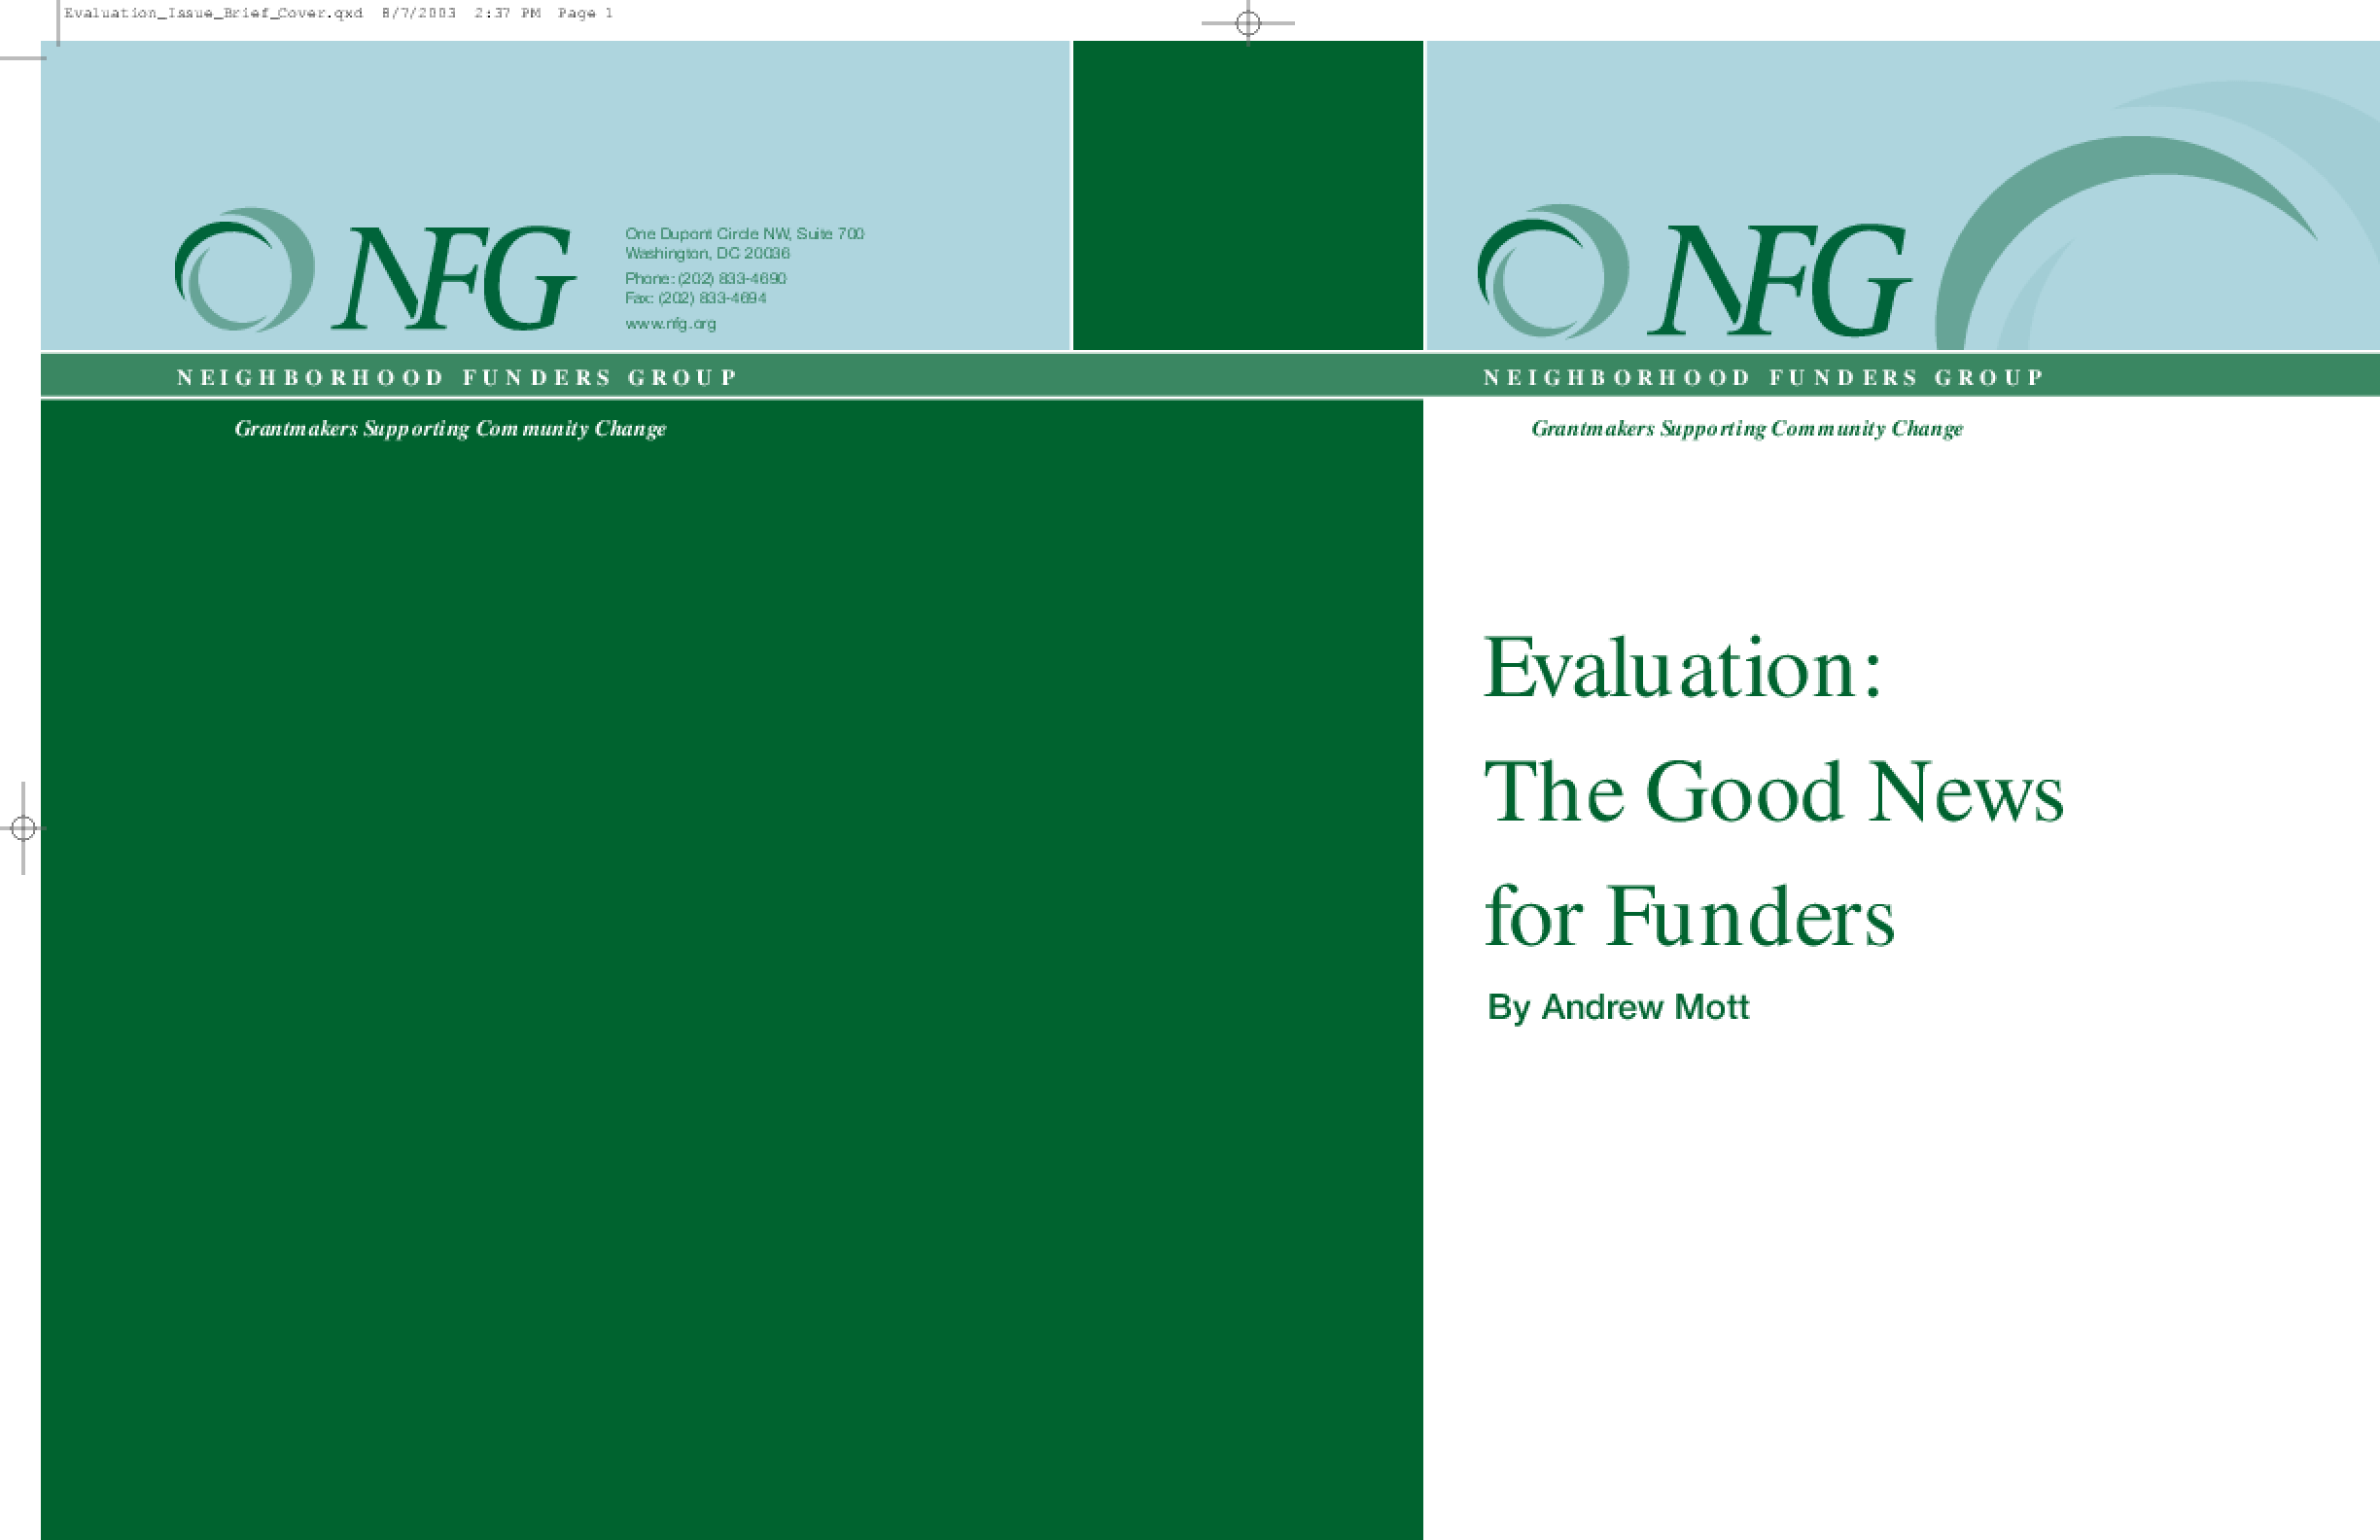 Evaluation: The Good News for Funders